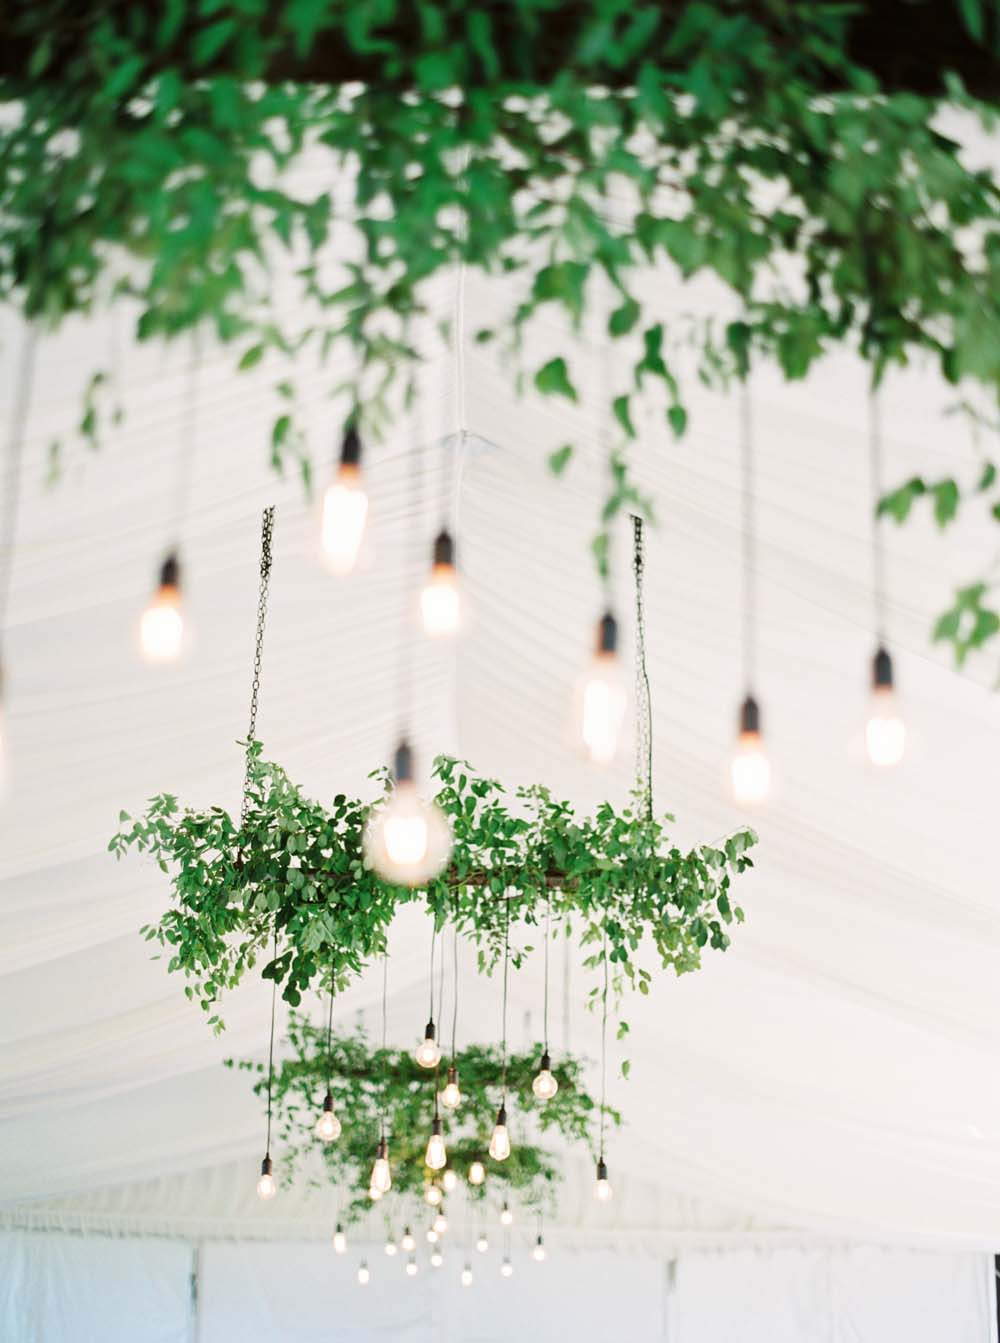 A Floral Peach Celebration in St. David's, Ontario - Chandeliers